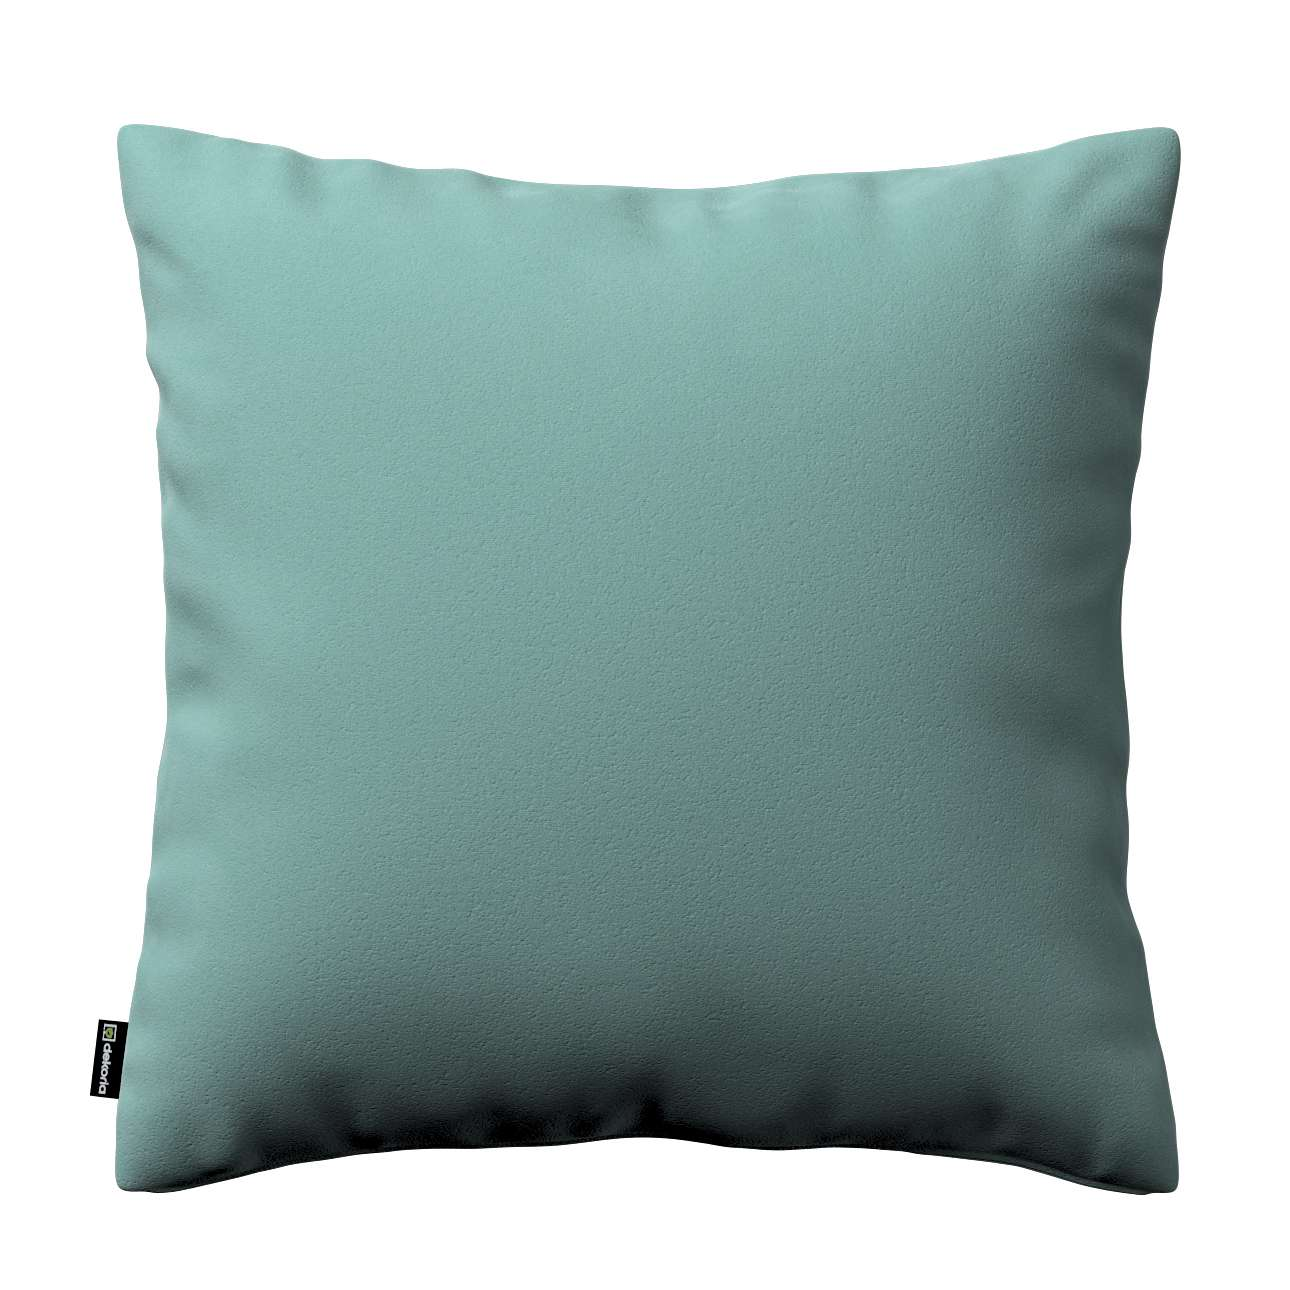 Kinga cushion cover 43 × 43 cm (17 × 17 inch) in collection Velvet, fabric: 704-18